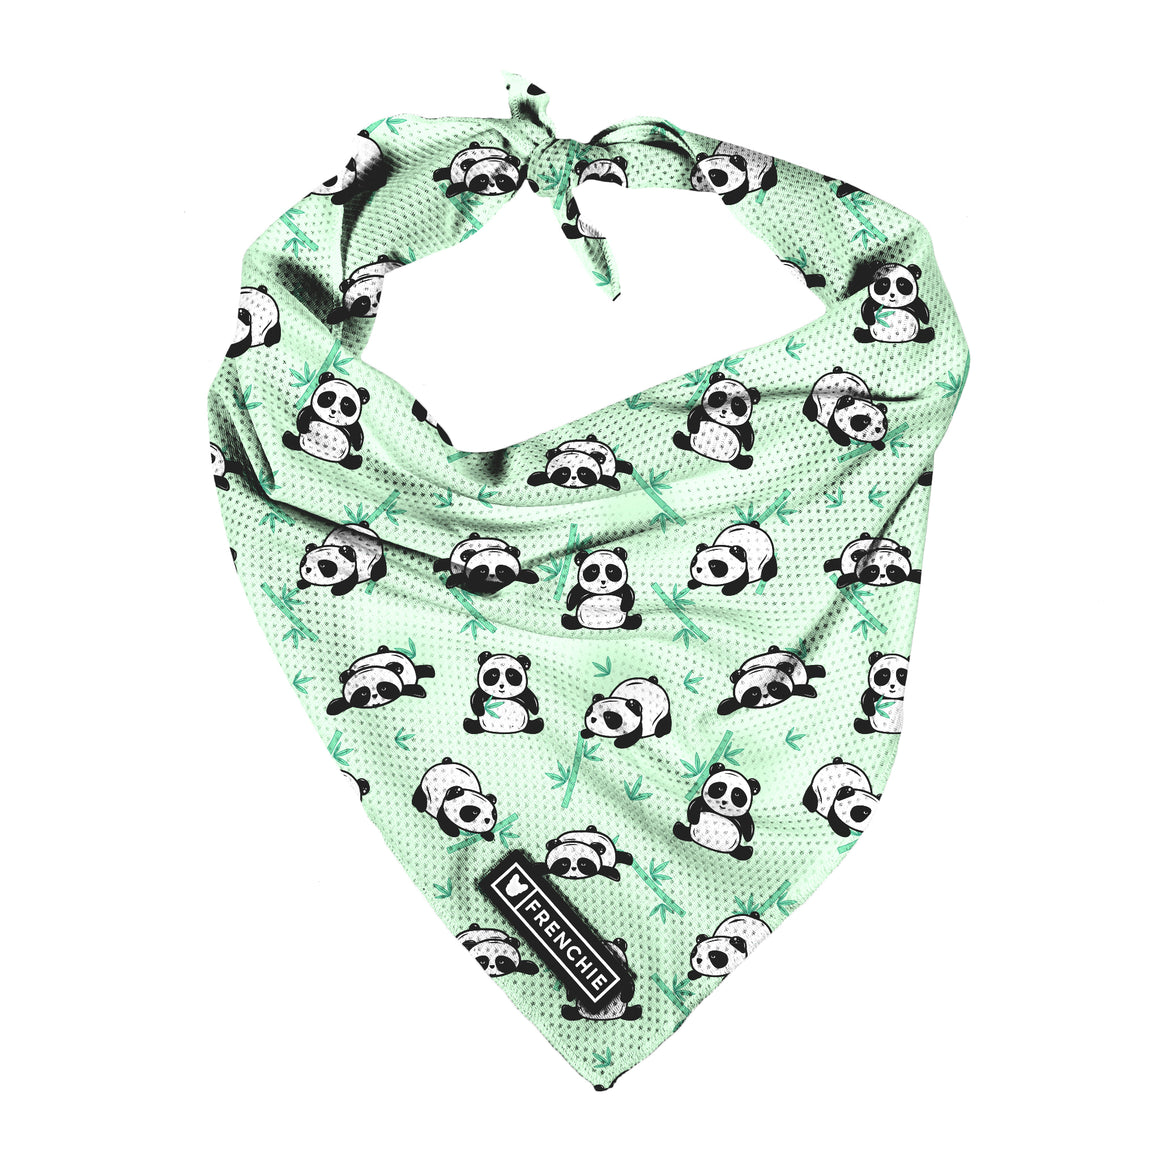 Frenchie Cooling Bandana- Green Panda - Frenchie Bulldog - Shop Harnesses for French Bulldogs - Shop French Bulldog Harness - Harnesses for Pugs